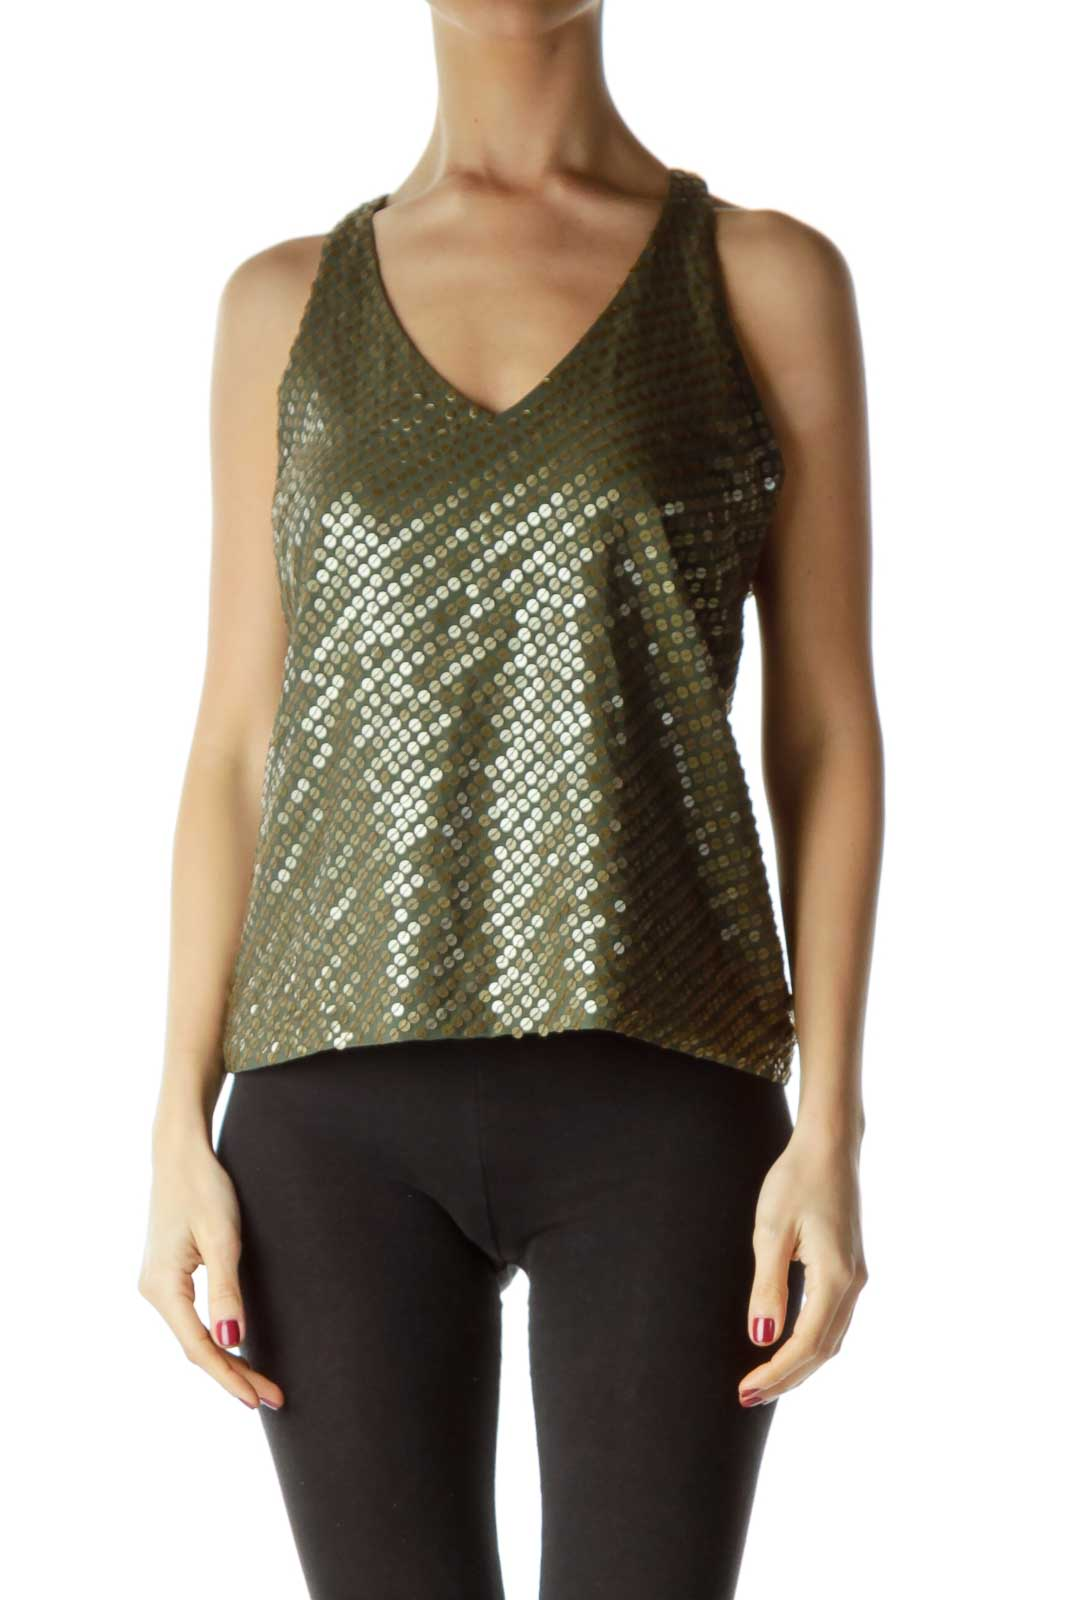 Green Gold Racerback Tank Top